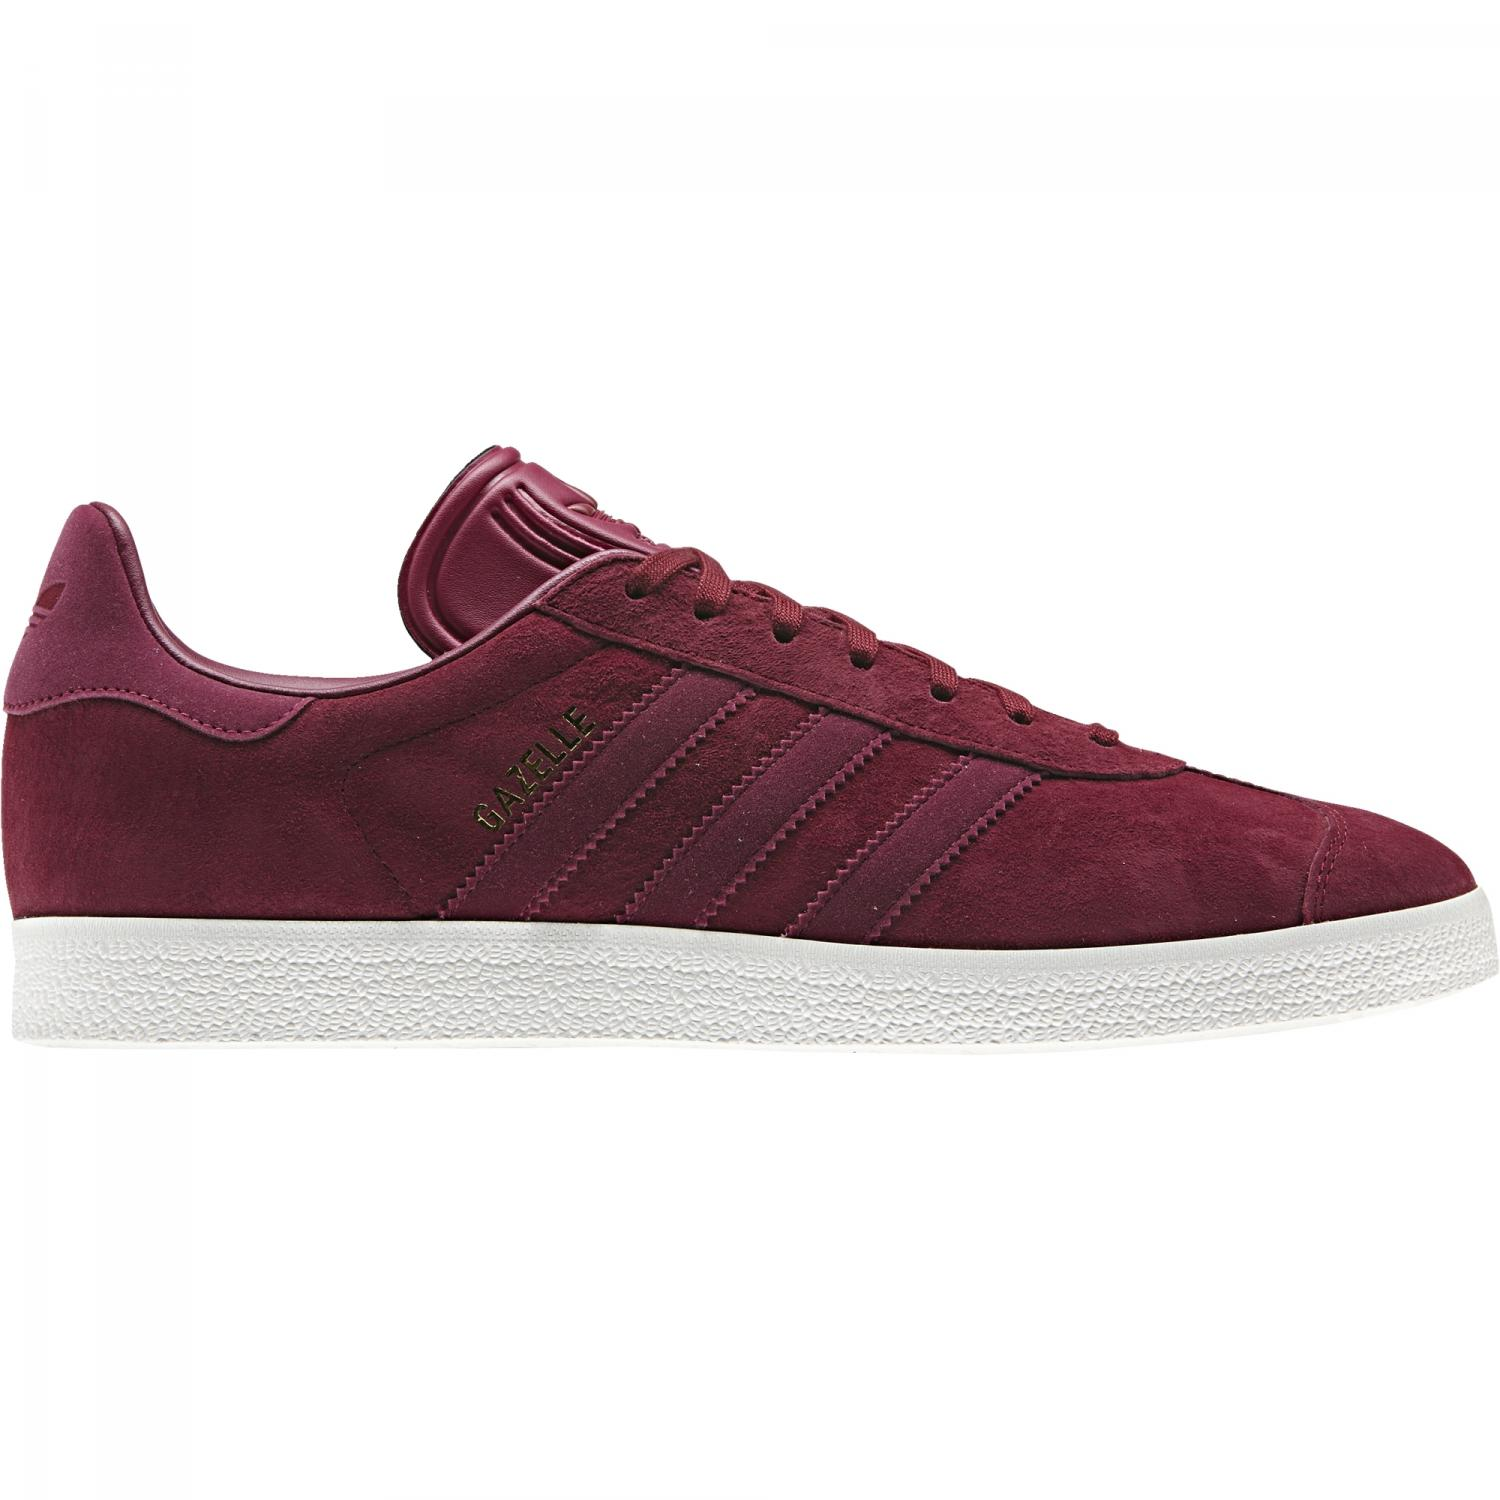 Originals Gazelle Adidas Scarpe Adidas Scarpe Originals Gazelle Bordeaux pqIxHY